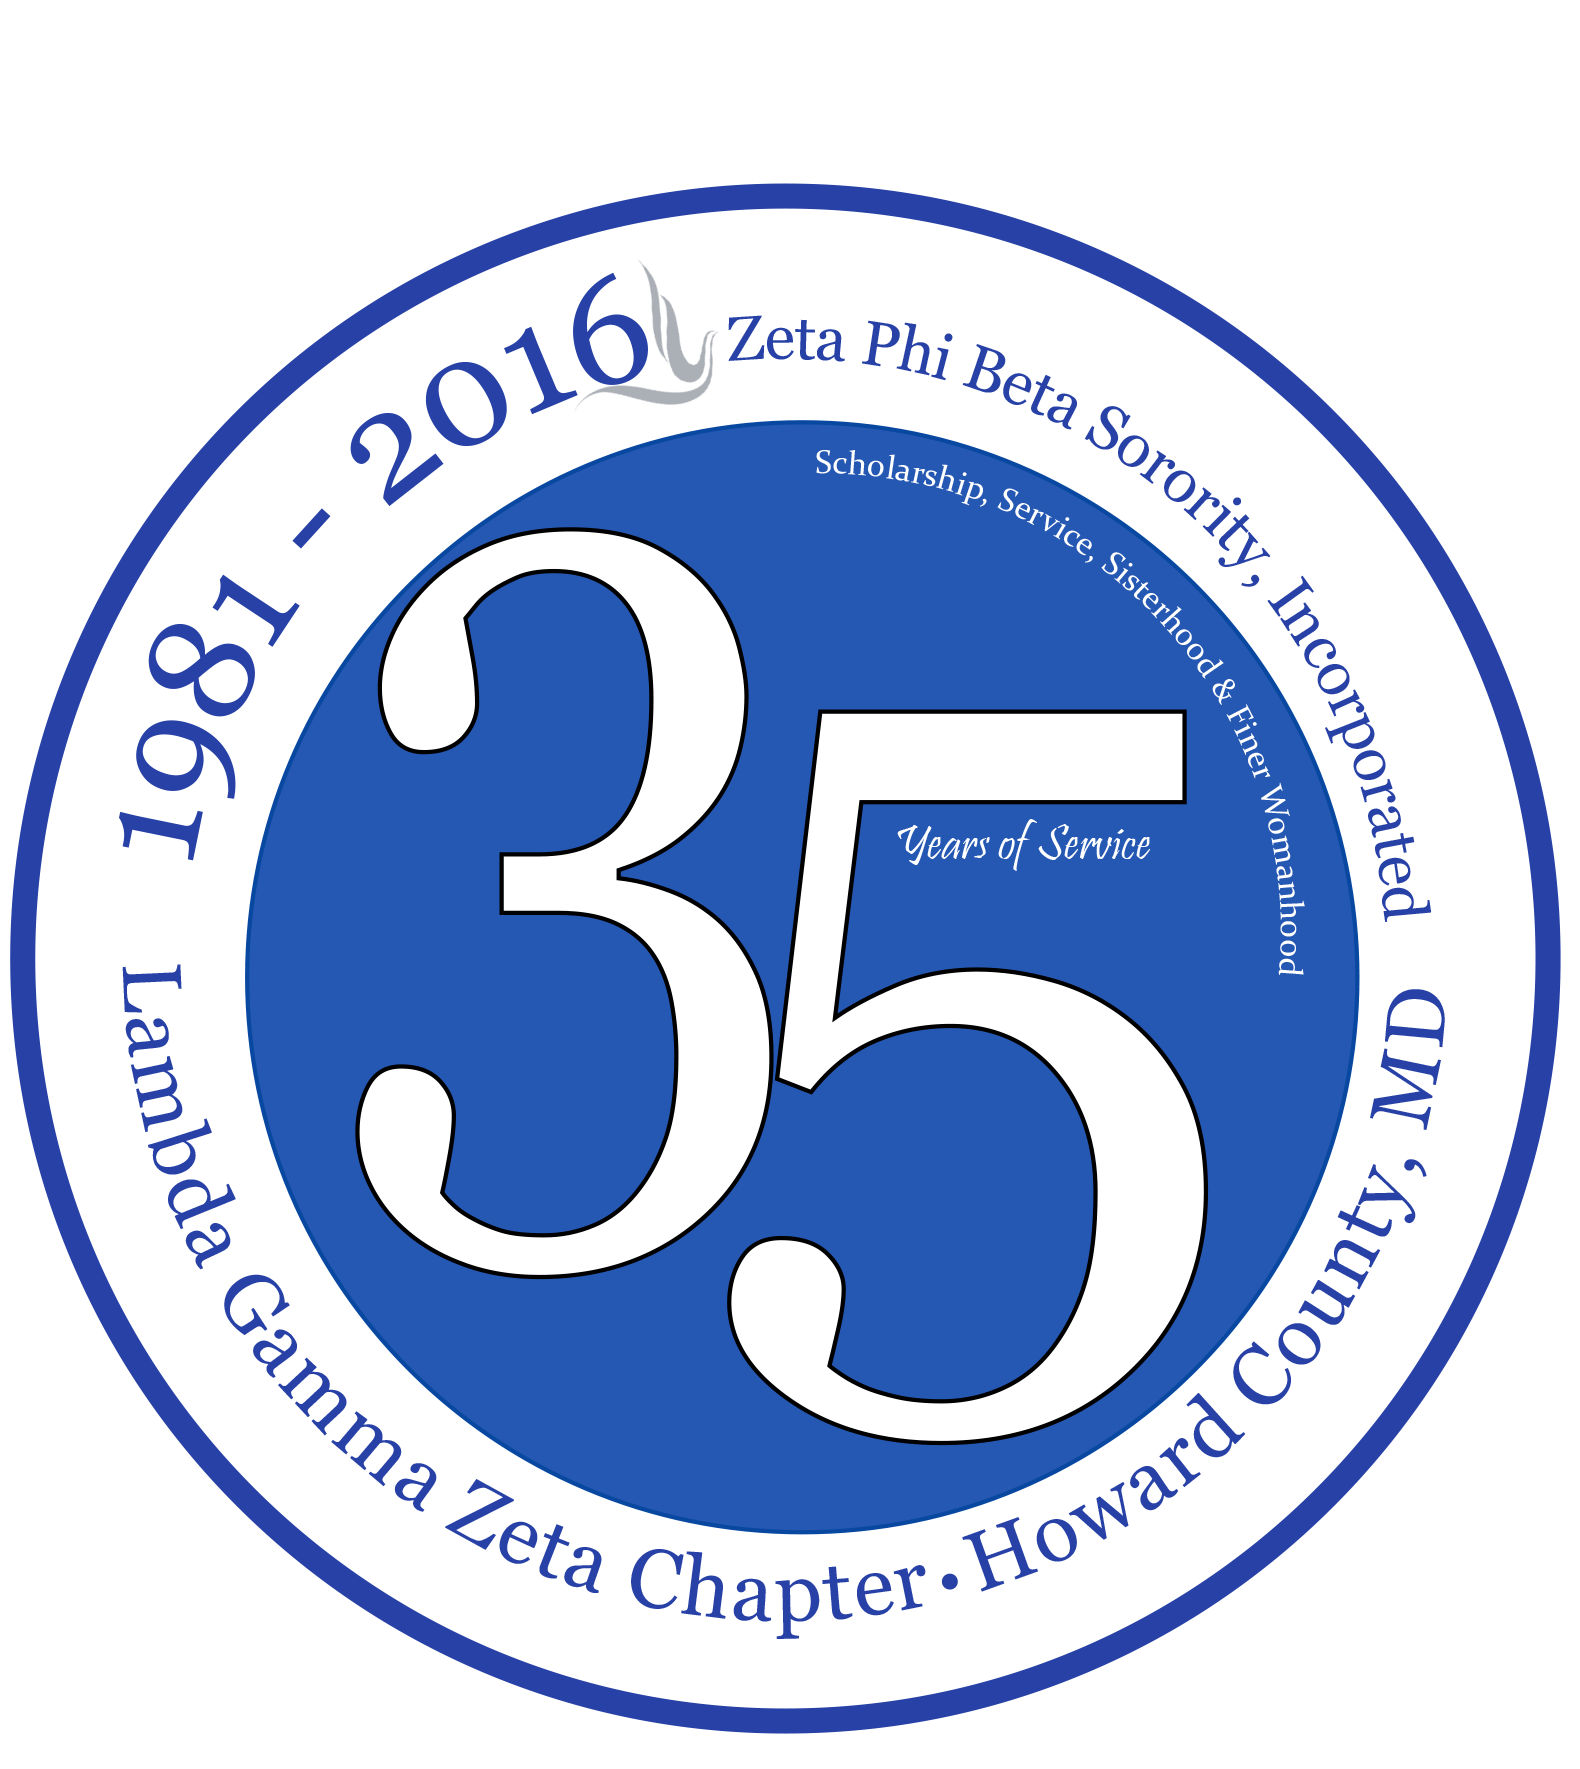 Zeta phi beta sorority inc serves howard county for 35 years lambda gamma zeta chapter has also supported national organizations including march of dimes national multiple sclerosis society and the american cancer buycottarizona